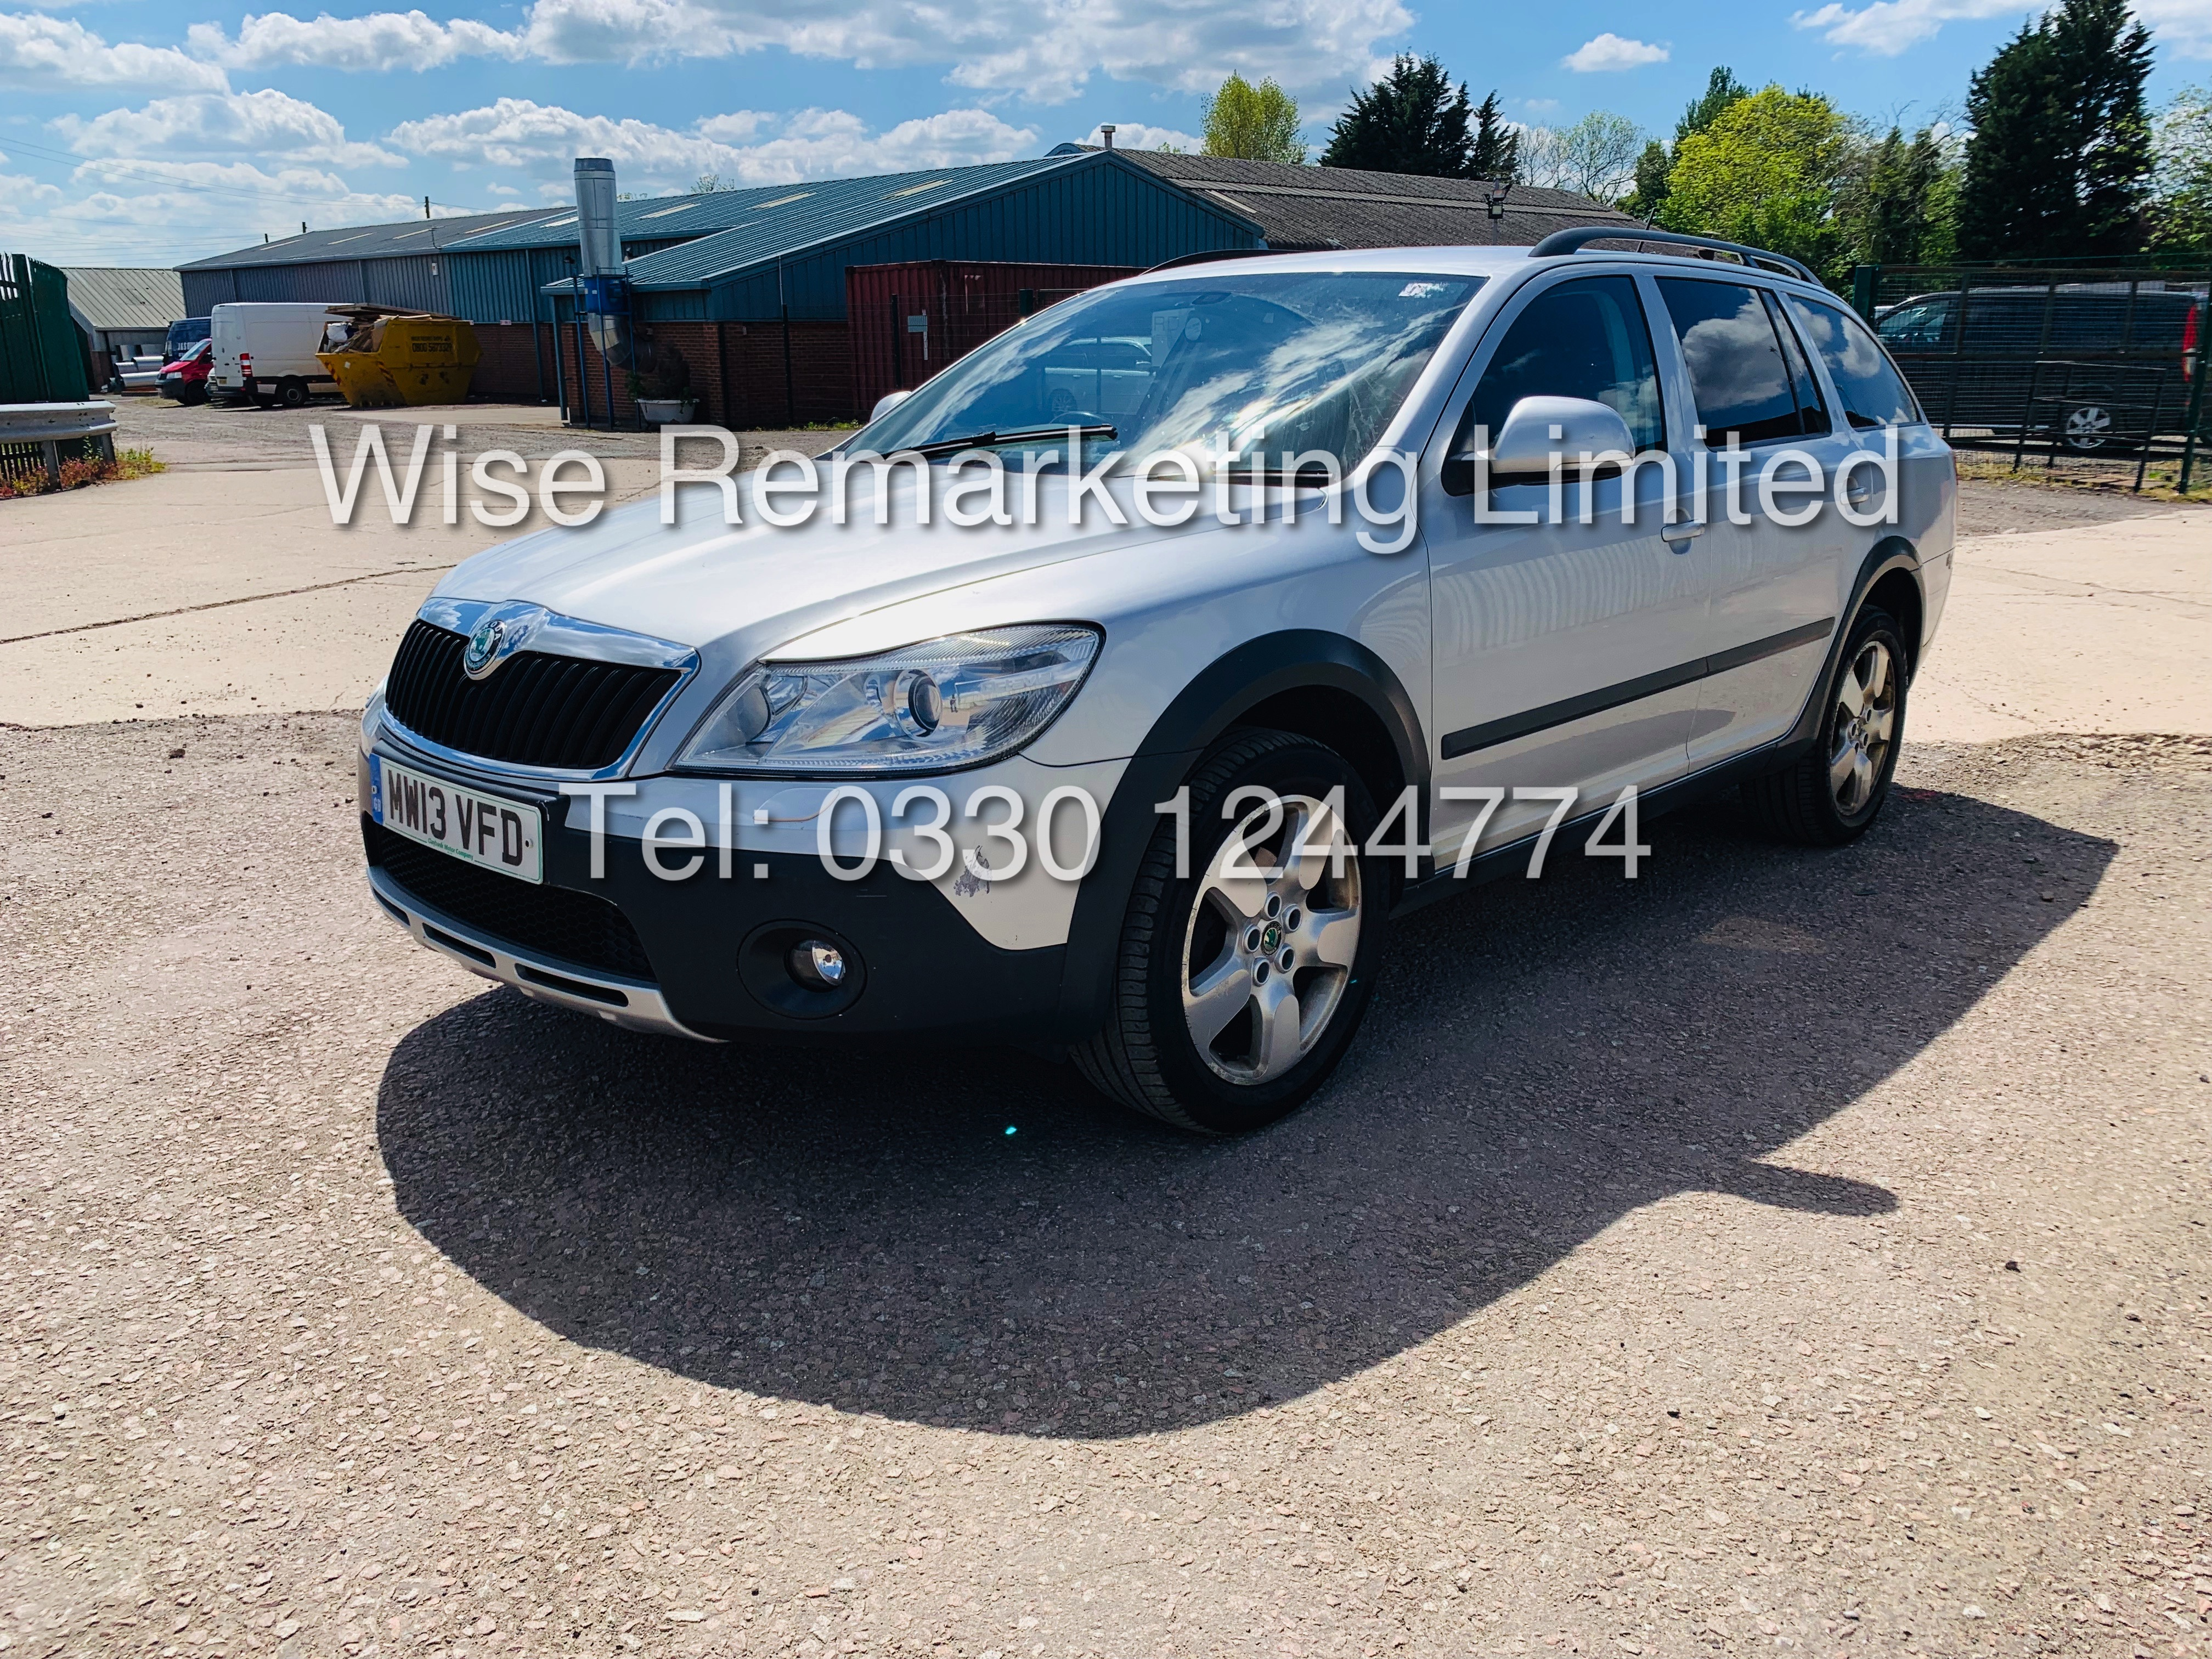 SKODA OCTAVIA (SCOUT) 2.0tdi DSG AUTOMATIC ESTATE / 2013 / 1 OWNER WITH FULL HISTORY / 140BHP - Image 2 of 14